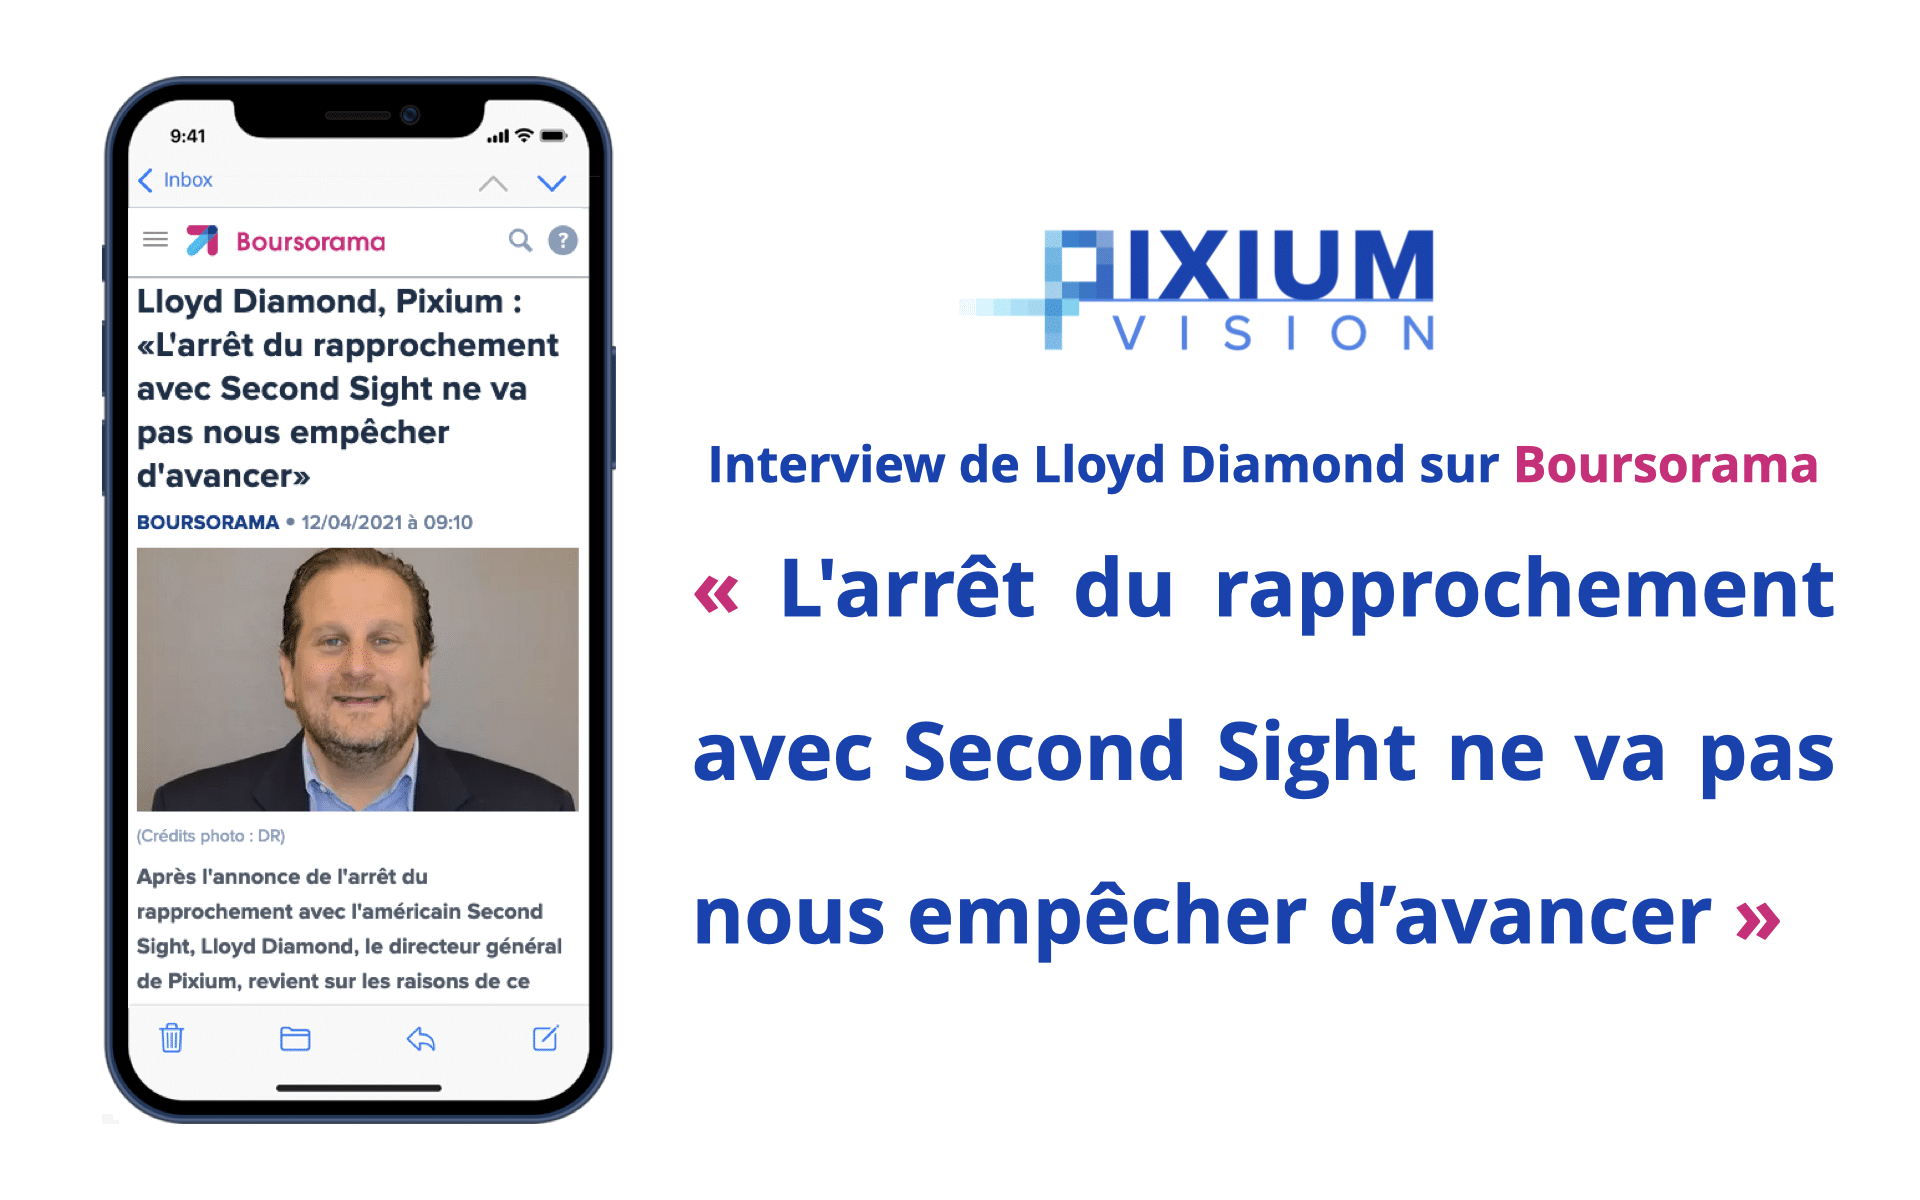 Interview de Lloyd Diamond sur Boursorama